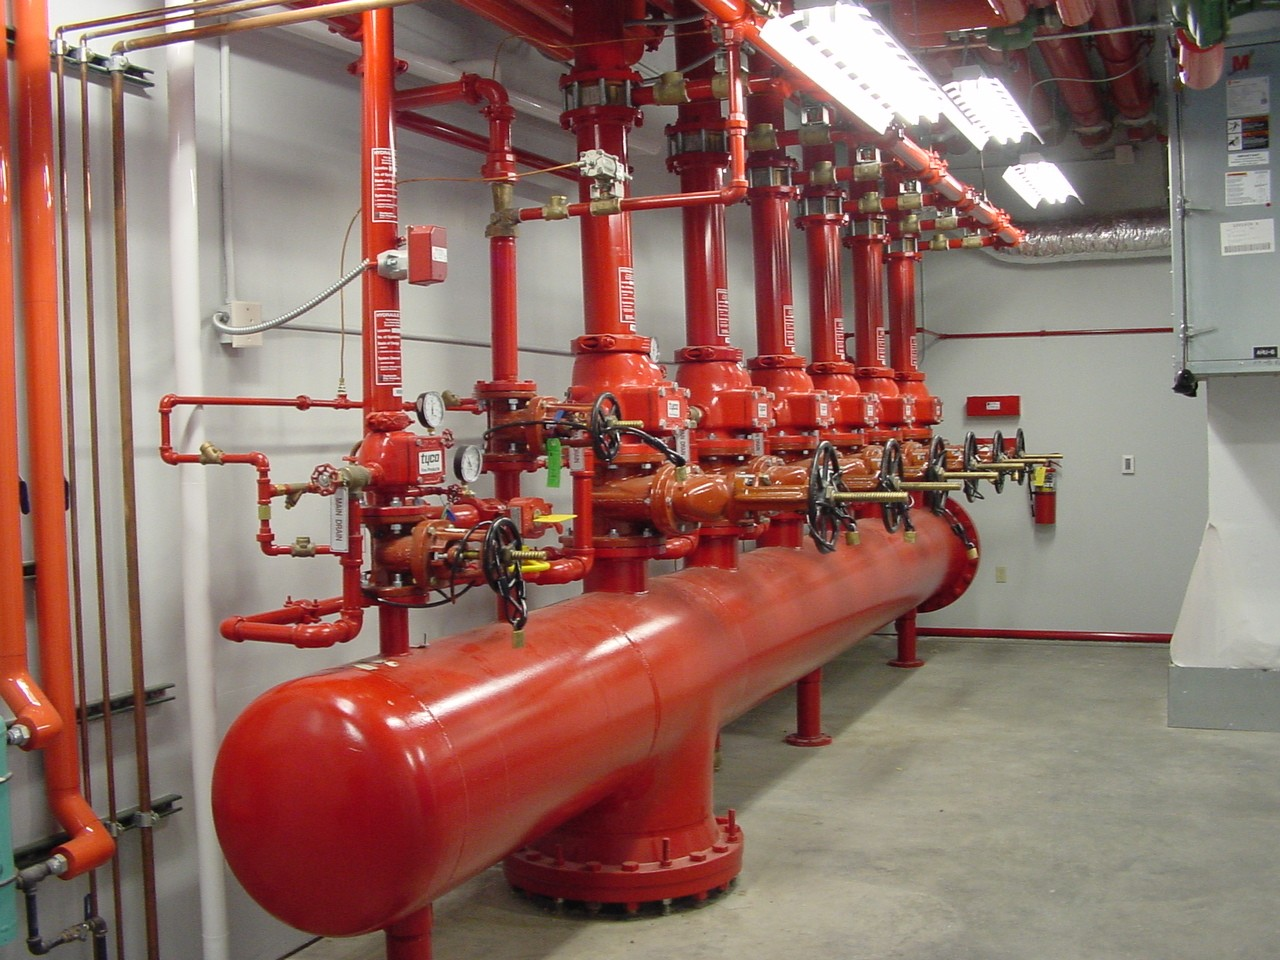 Fire protection systems soled